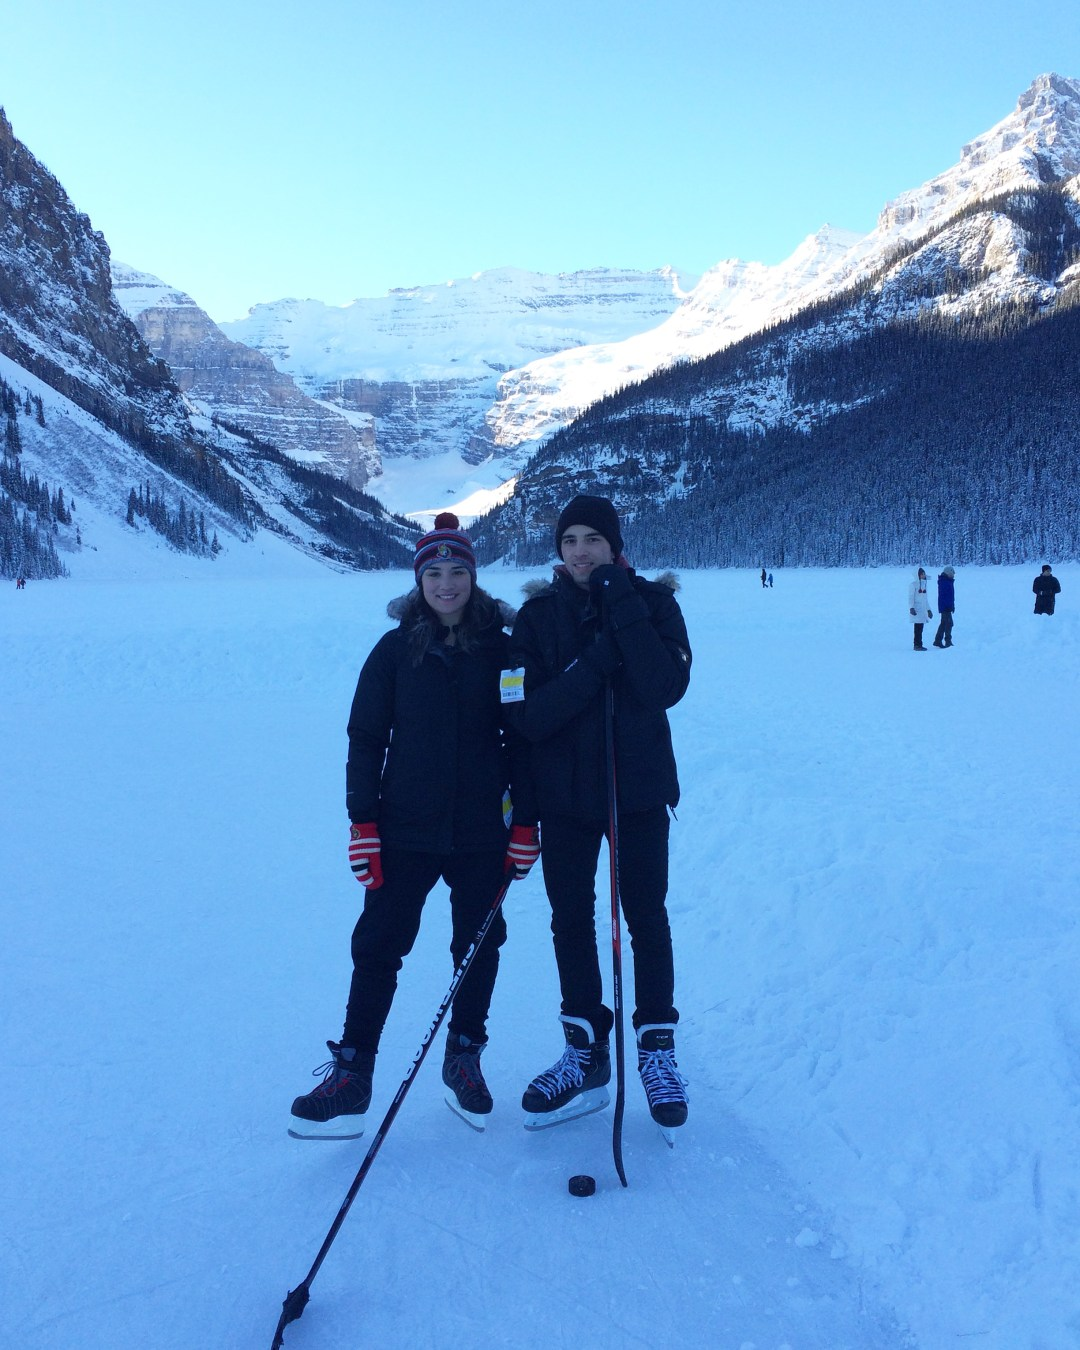 Sporting my Ottawa Senators on my toque and my mittens during some pond hockey  on Lake Louise